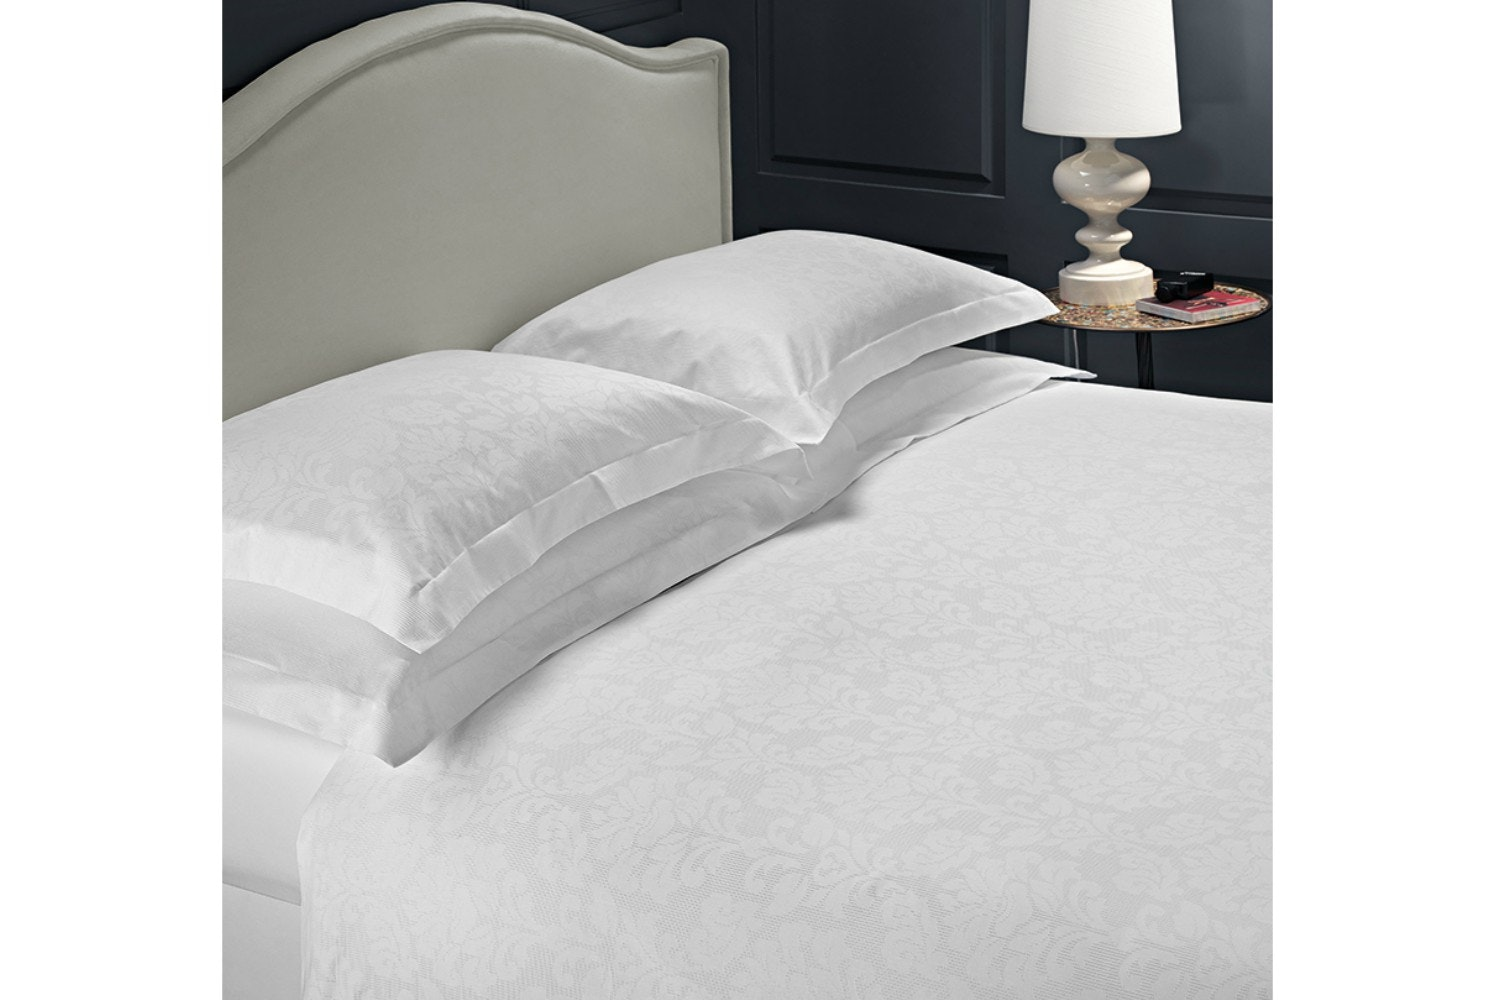 The Linen Room Athena Oxford Pillowcase Square